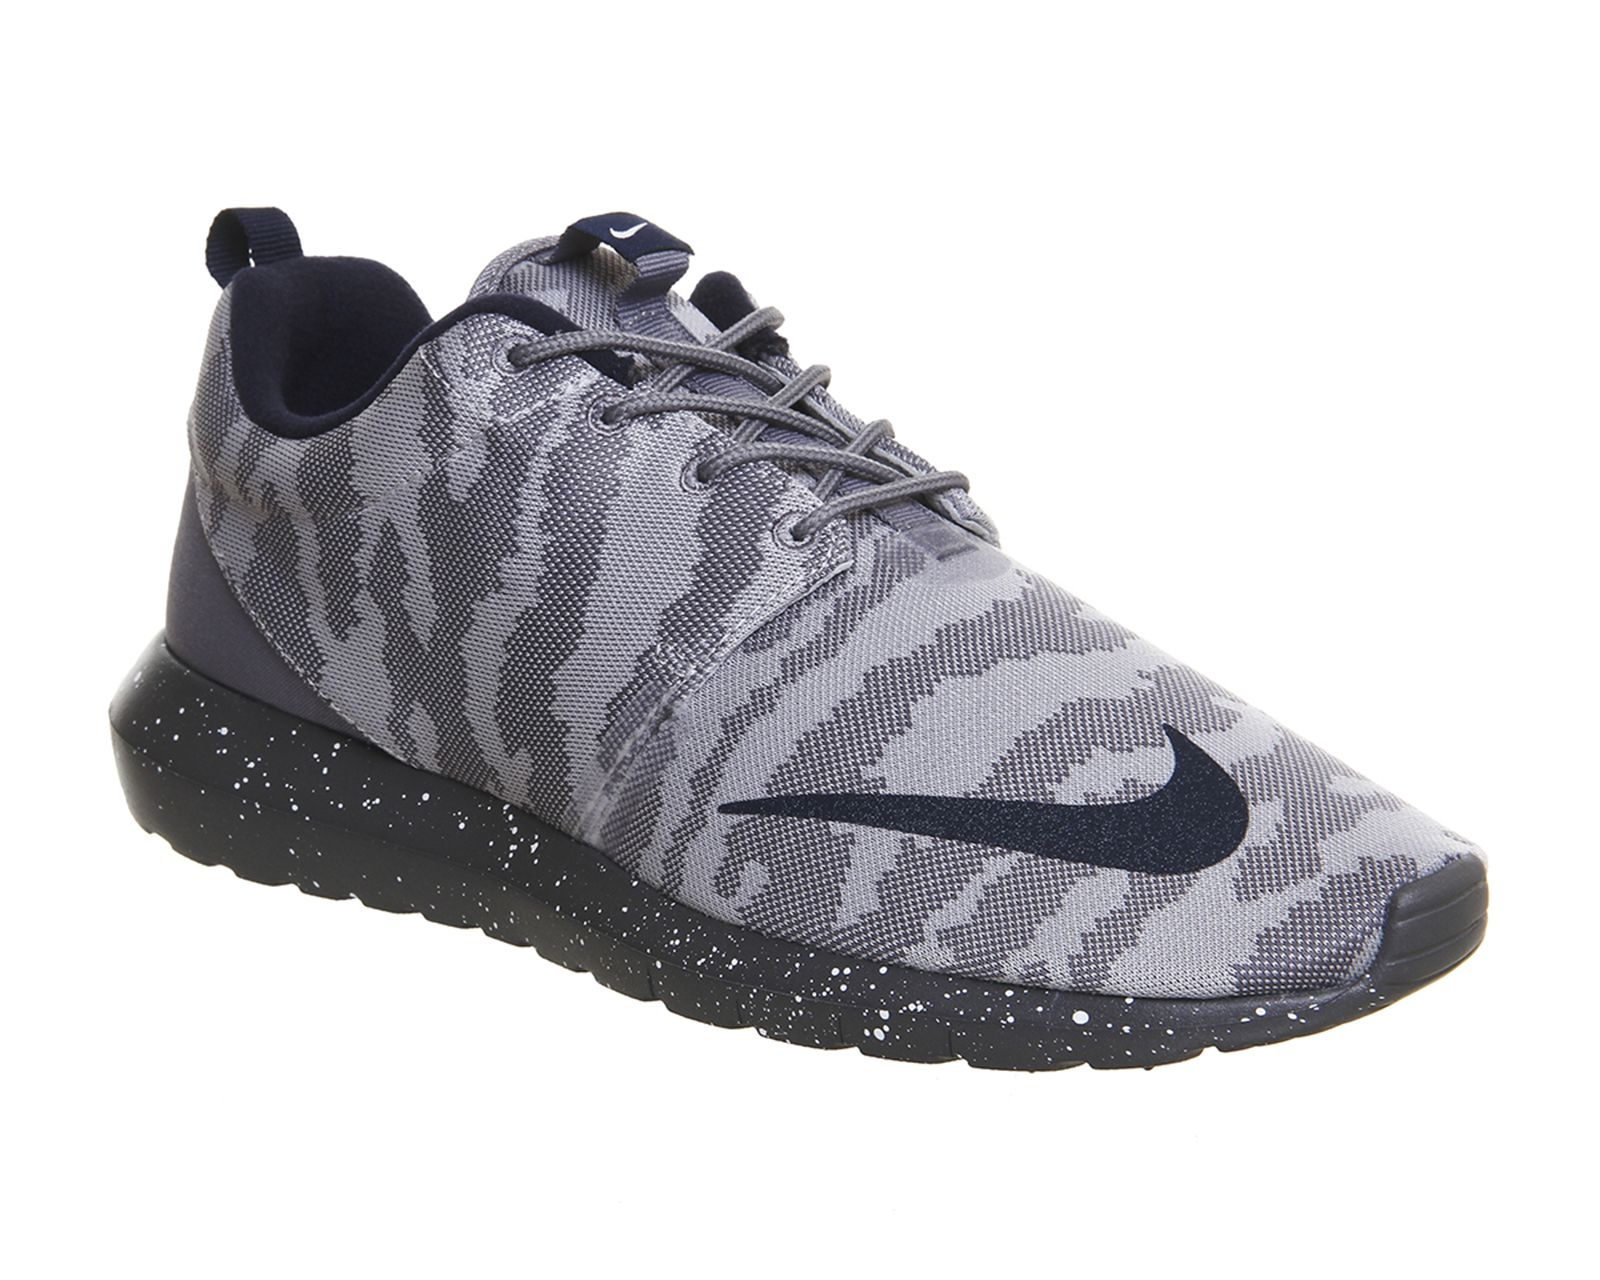 superior quality 2d5ea 5d434 ... top quality nike roshe run nm flt silver dark grey cool grey 79be3 53648